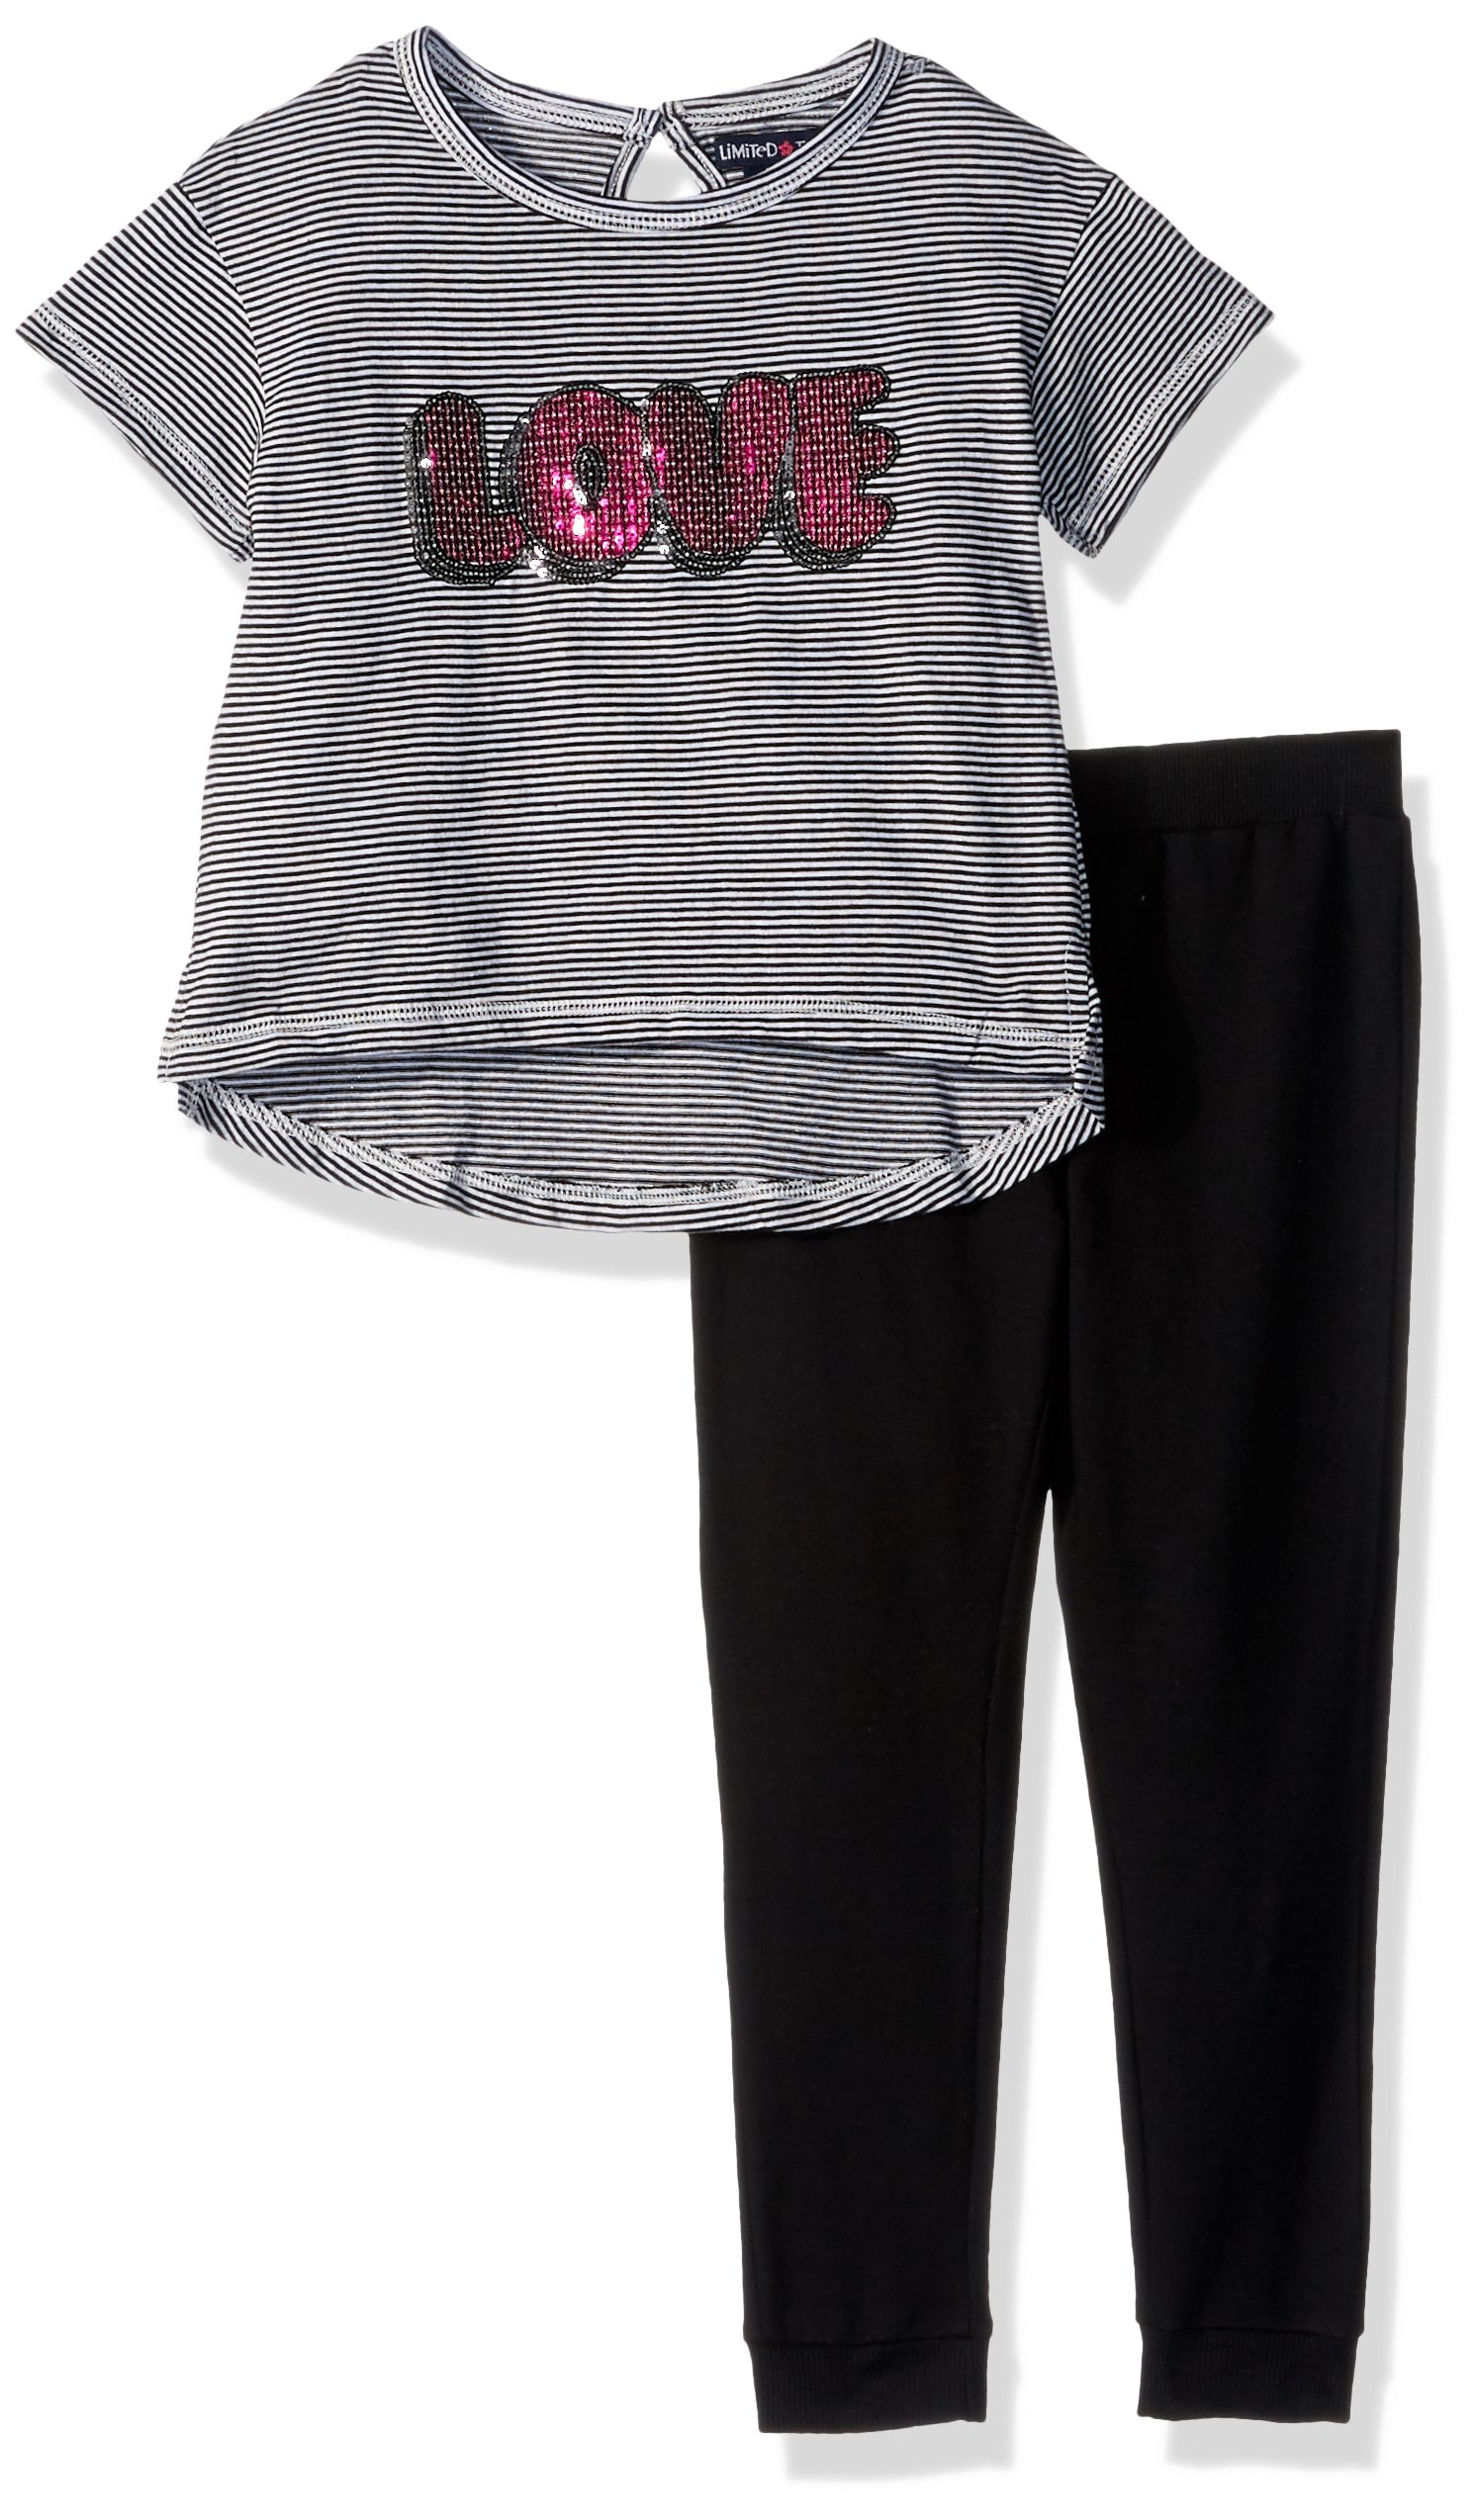 Limited Too Toddler Girls' Fashion Top Pant Set (More Styles Available), Black/White, 3T